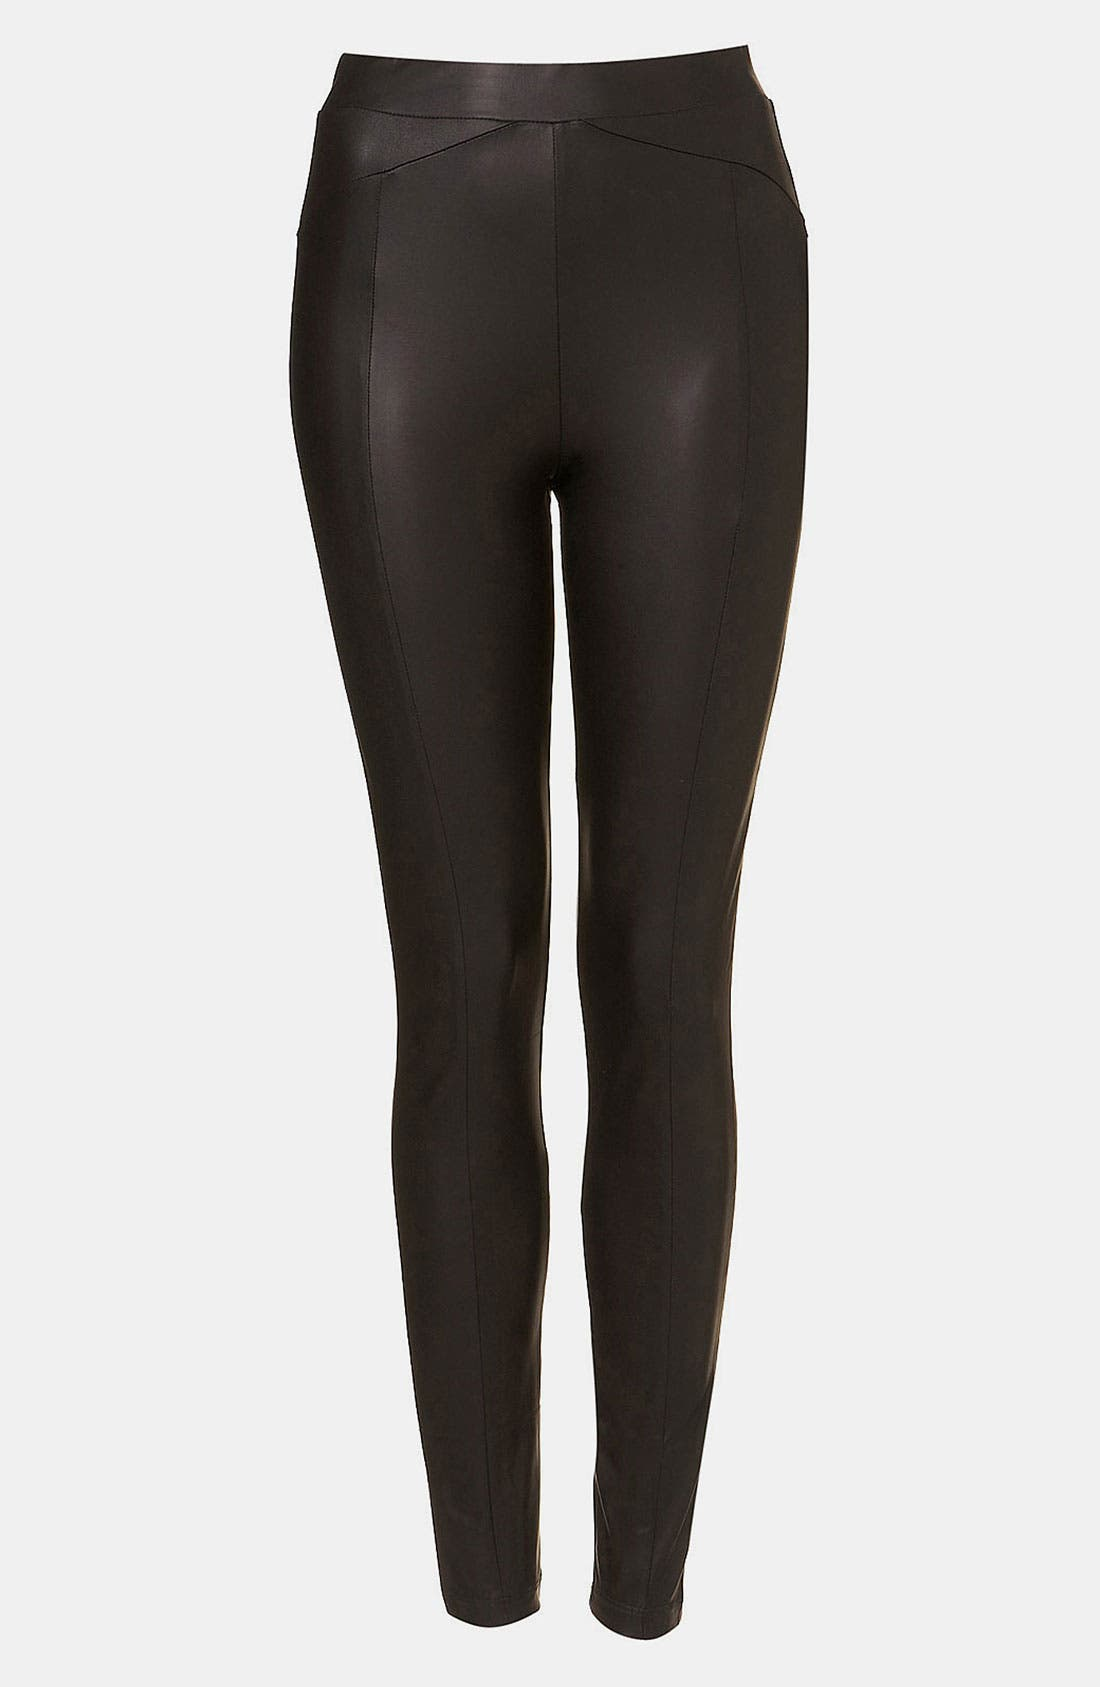 Alternate Image 1 Selected - Topshop Faux Leather Leggings